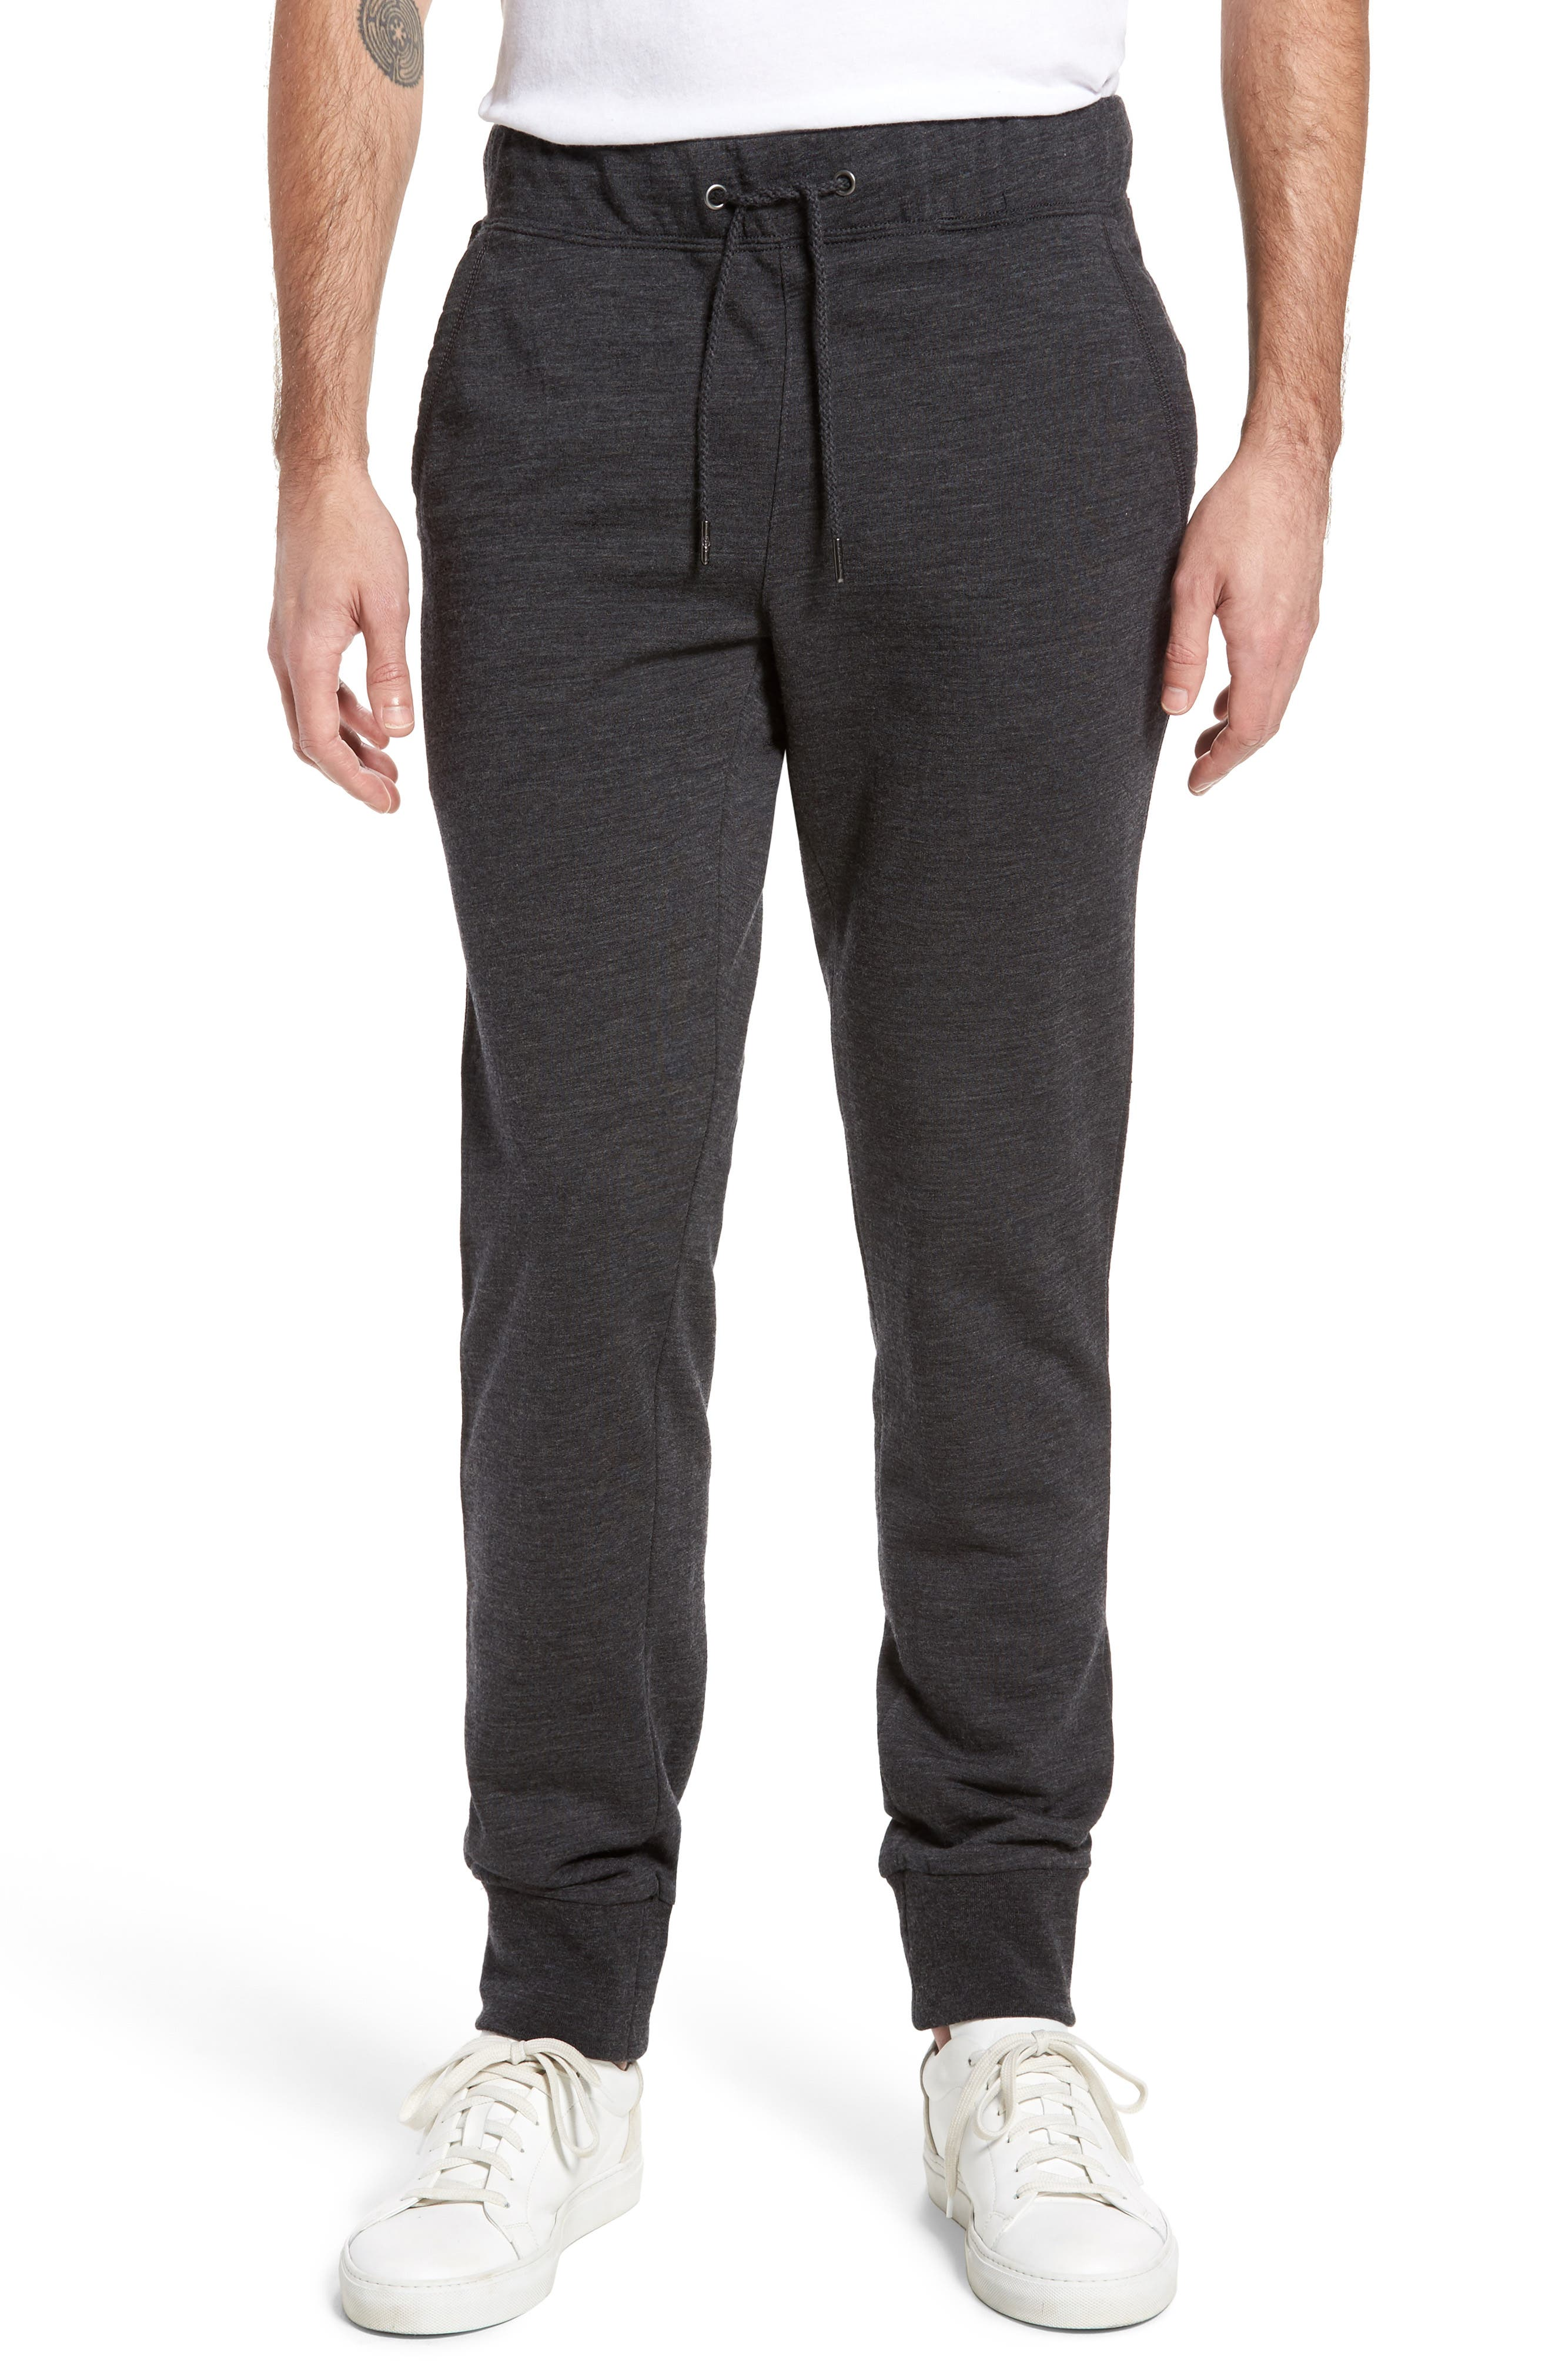 Merino Wool Fleece Jogger Pants,                         Main,                         color,